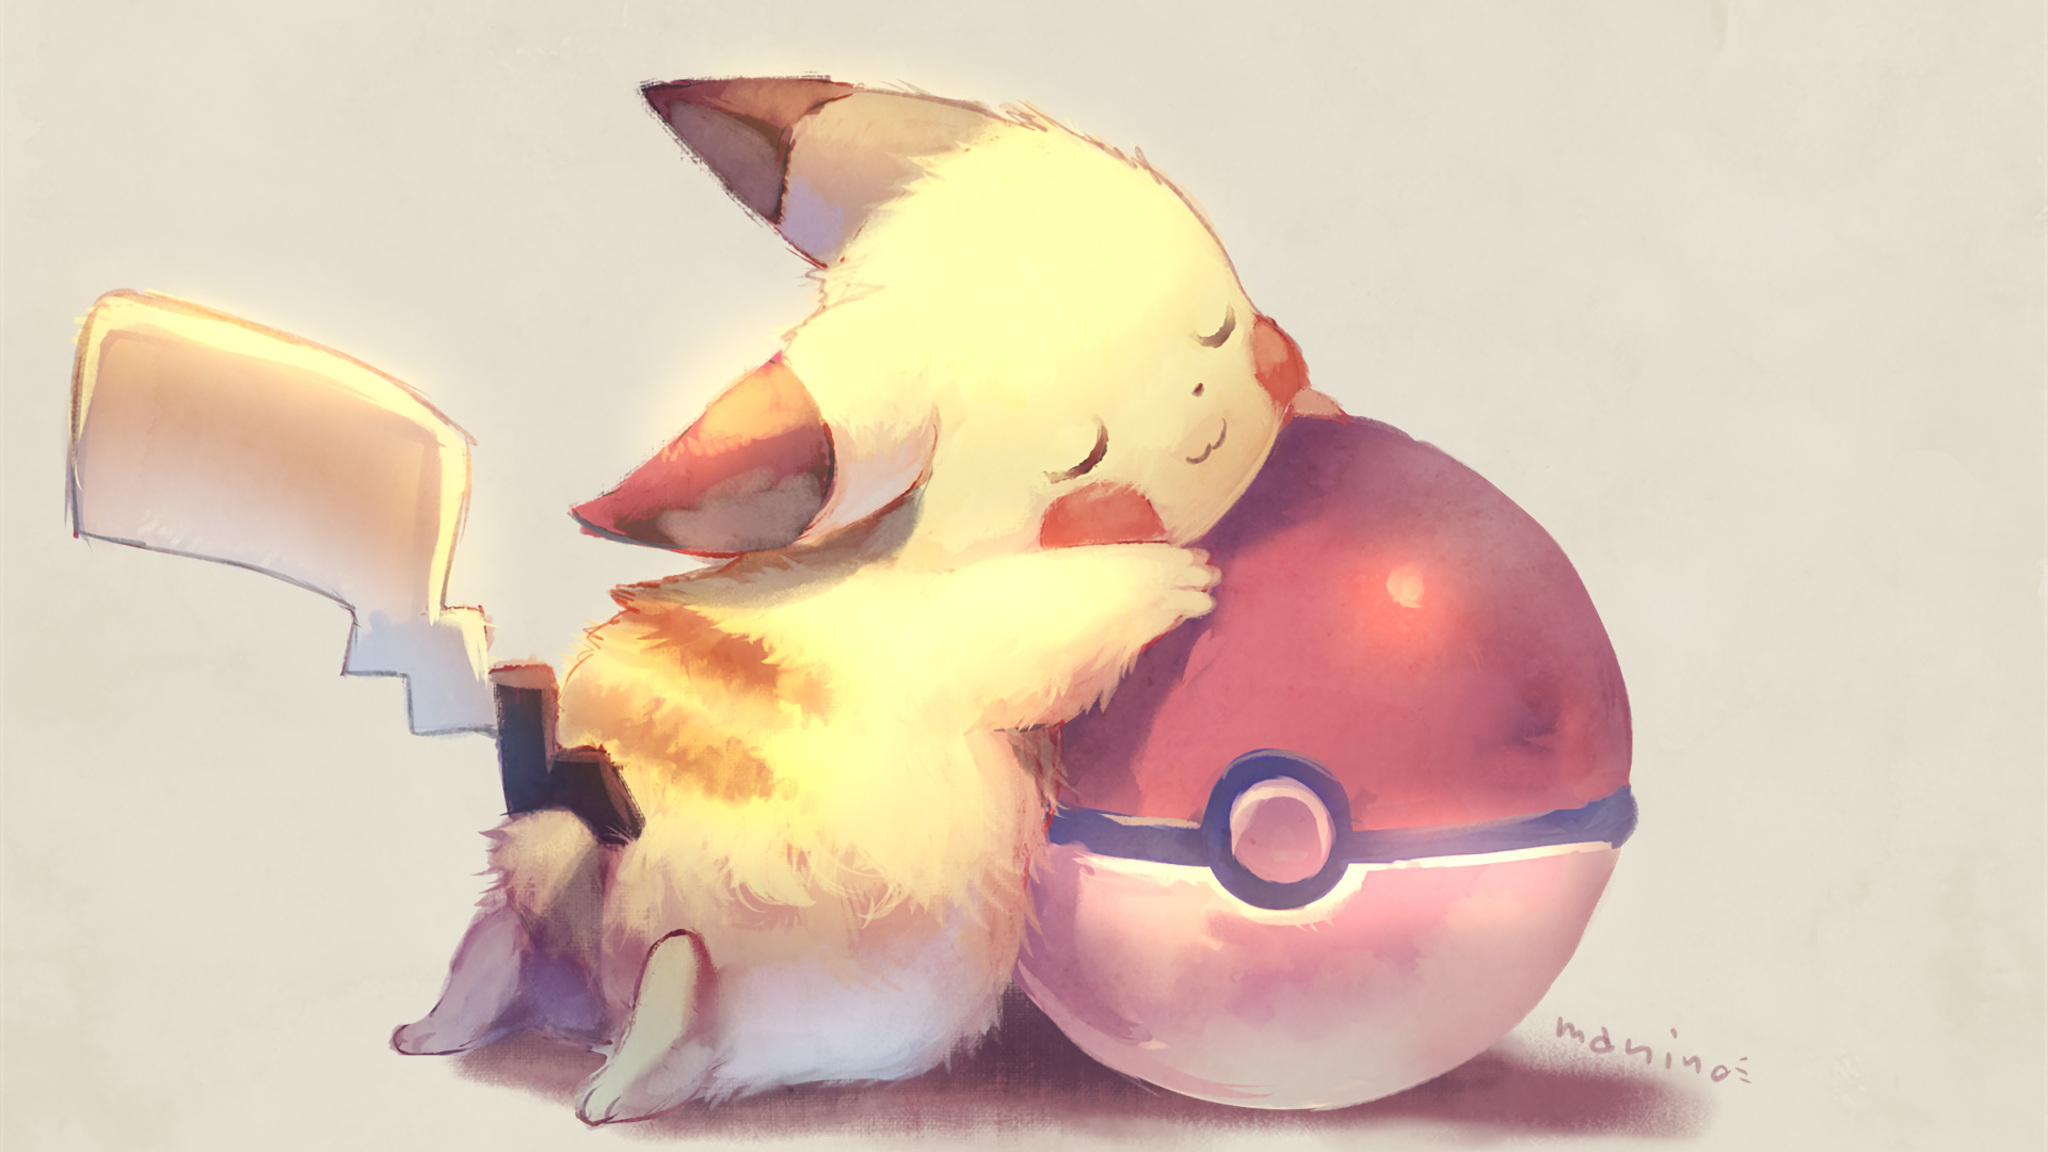 2048x1152 pokemon cute artwork 2048x1152 resolution hd 4k wallpapers